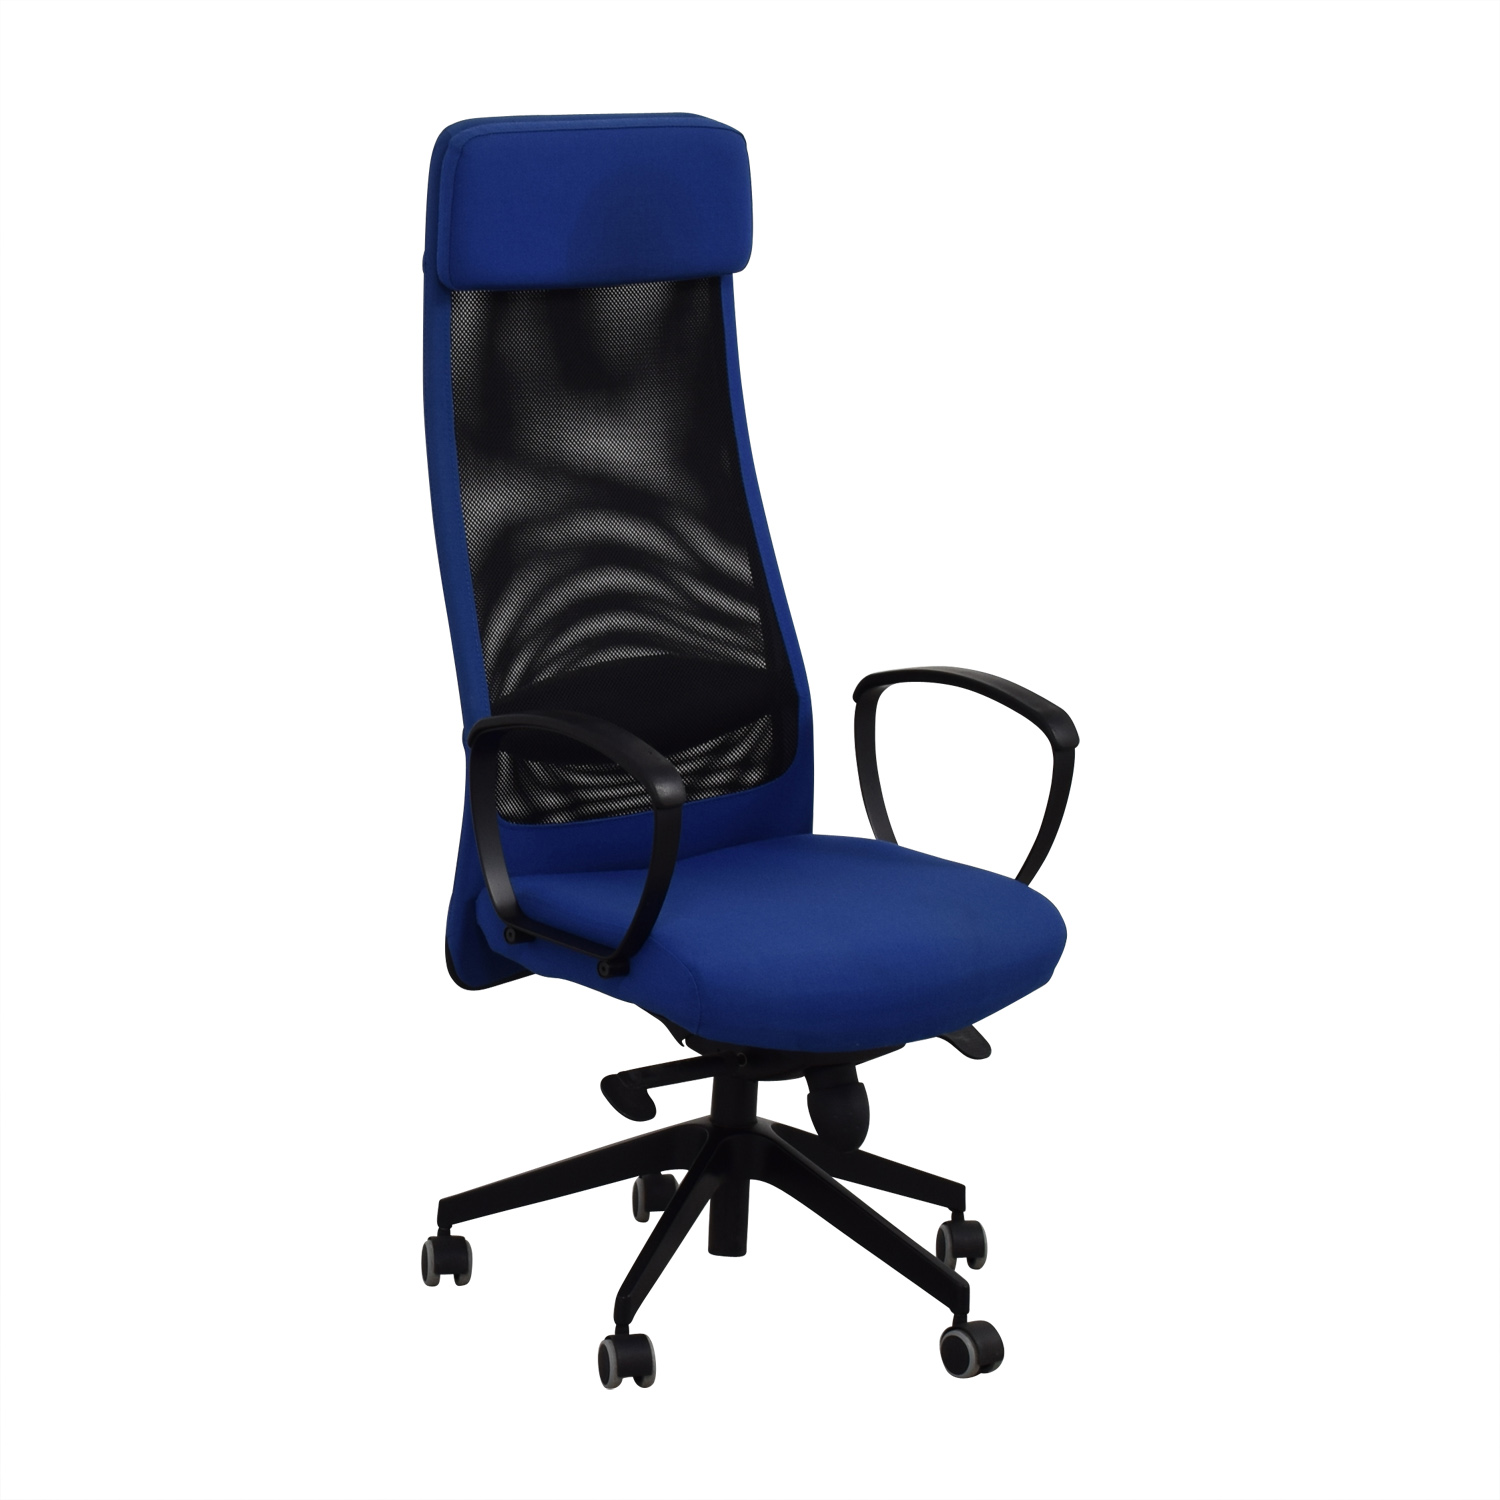 IKEA IKEA Markus Blue Swivel Chair Chairs